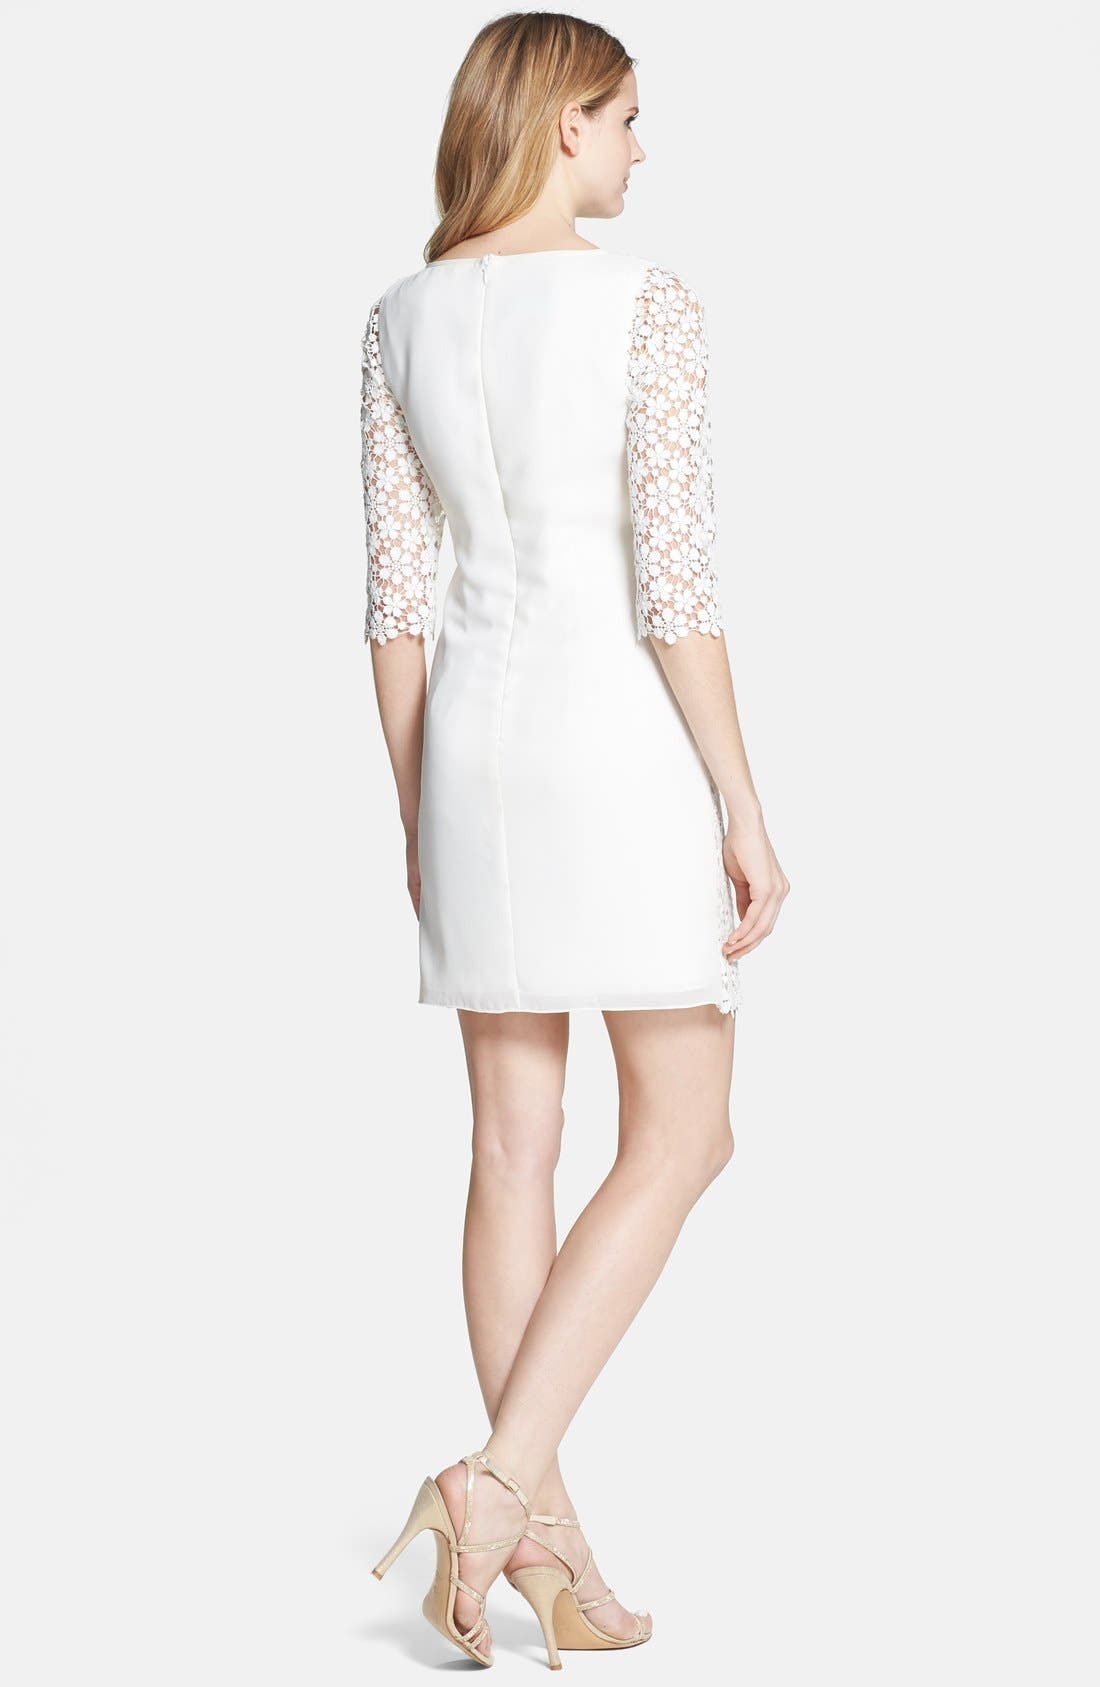 'Tibi' Daisy Guipure Lace Shift Dress,                             Alternate thumbnail 2, color,                             Ivory